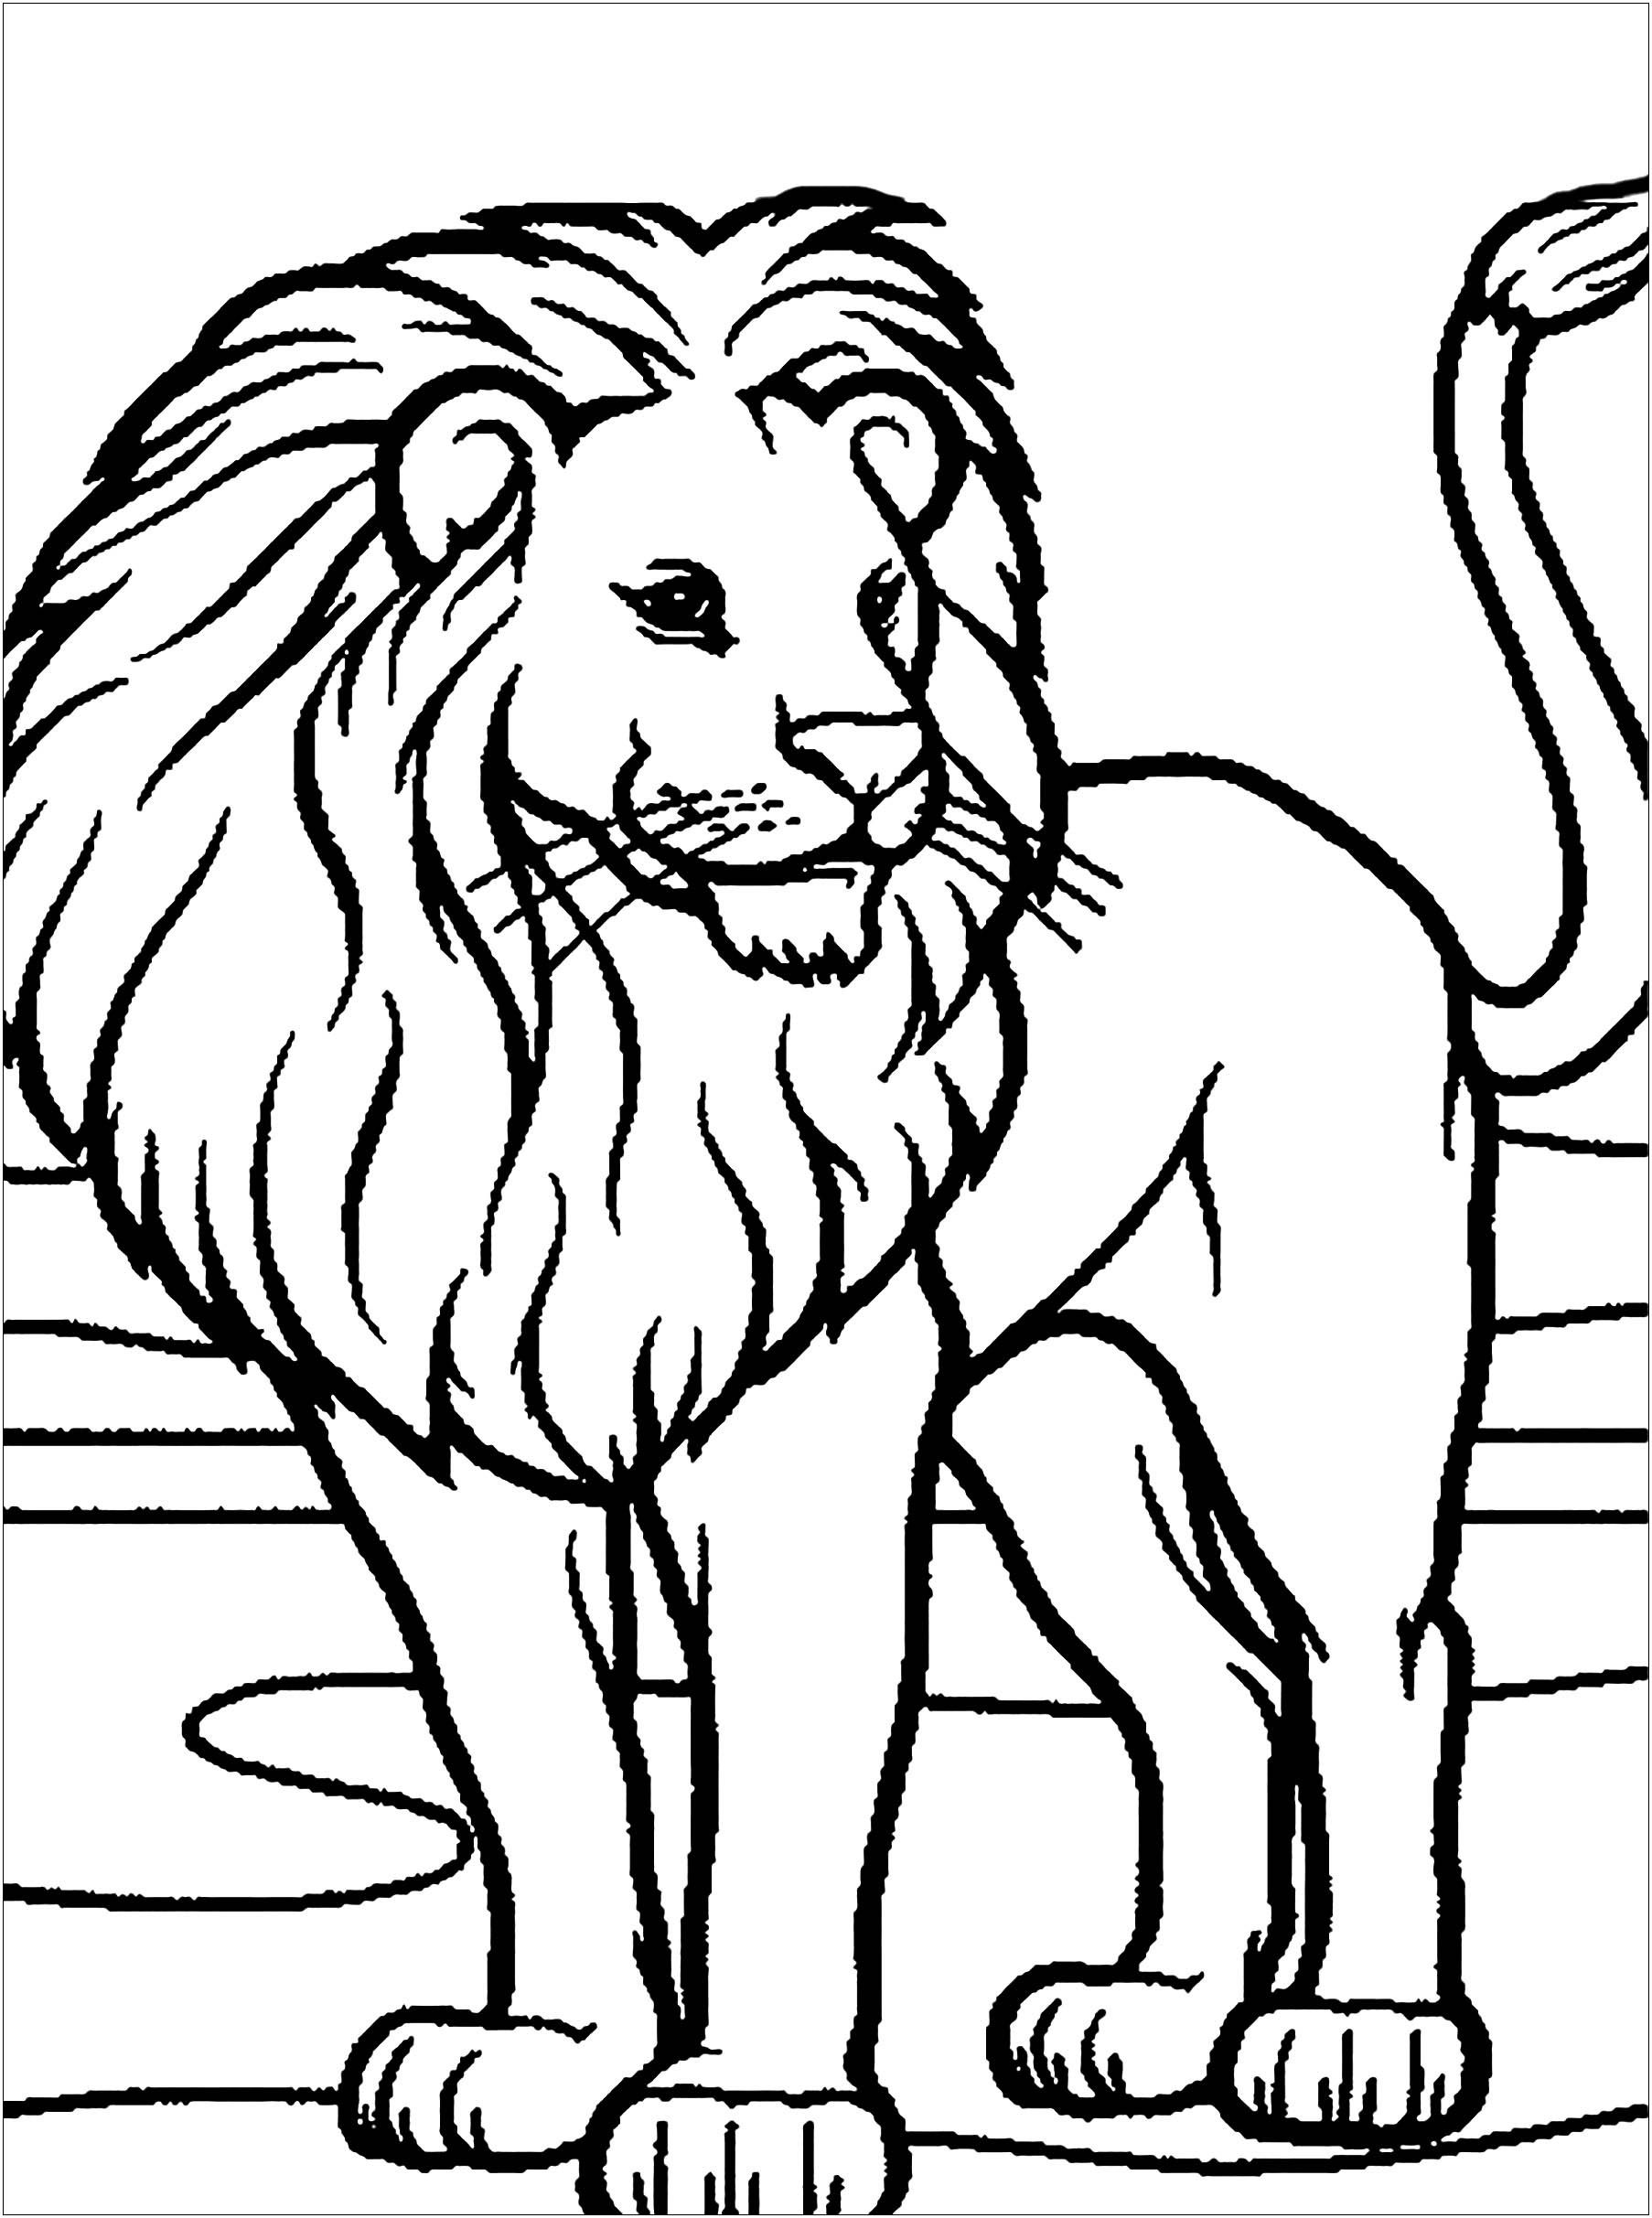 Coloring Page Of Lion Youngandtae Com In 2020 Animal Coloring Pages Lion Coloring Pages Coloring Pictures Of Animals